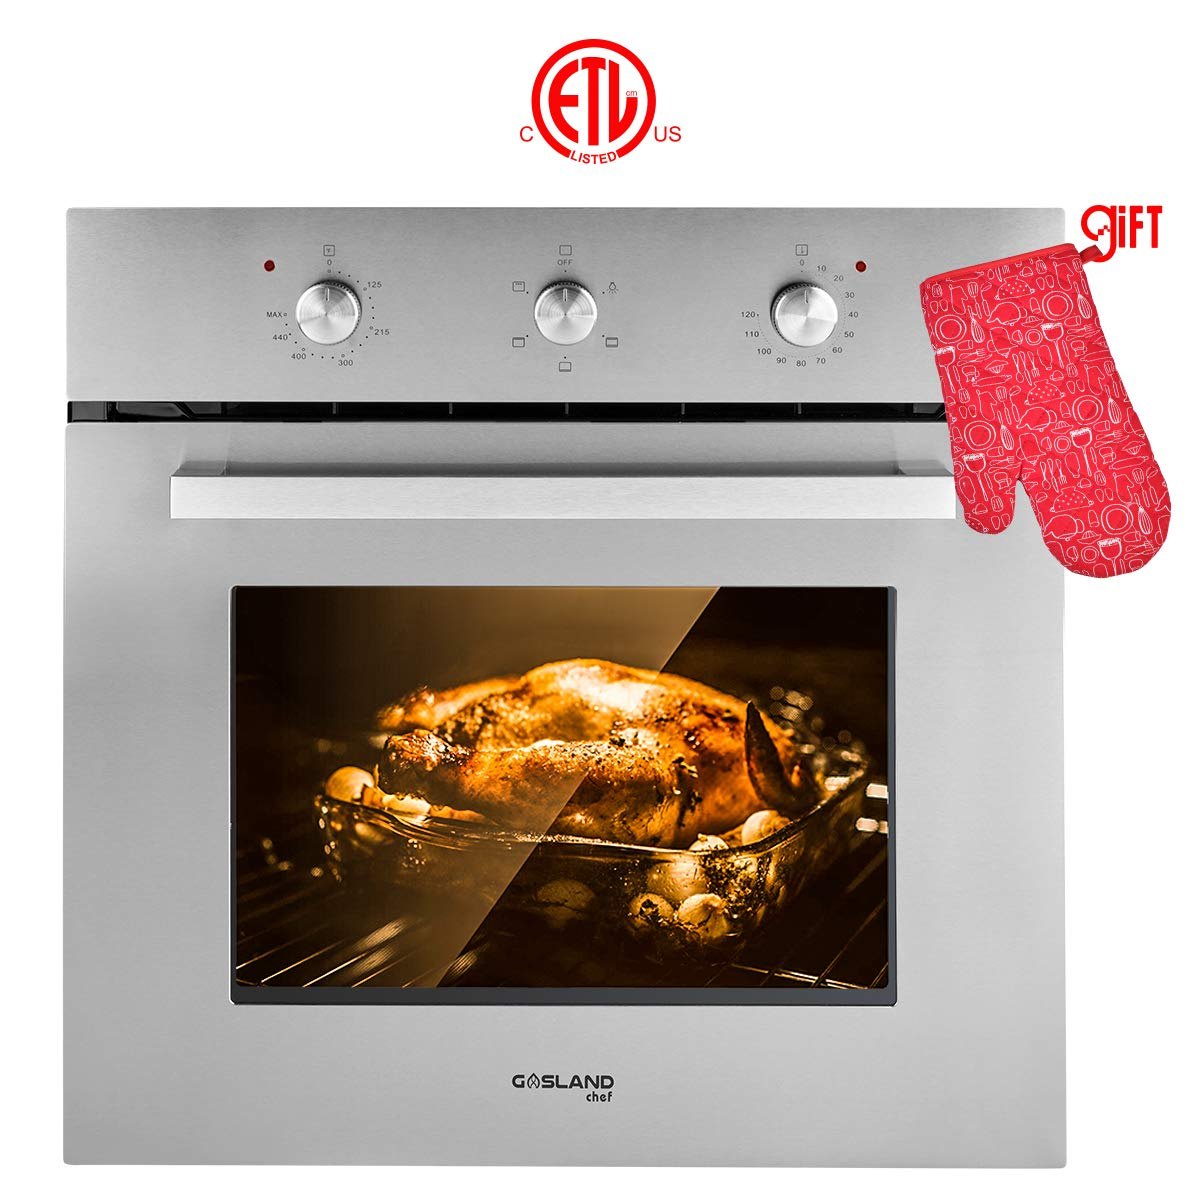 "Single Wall Oven, Gasland Chef ES606MS 24"" Built-in Electric Wall Oven, 6 Cooking Function, Stainless Steel Mechanical Electric Wall Oven with Cooling Down Fan, 3 Layer Glass, ETL Safety Certified"